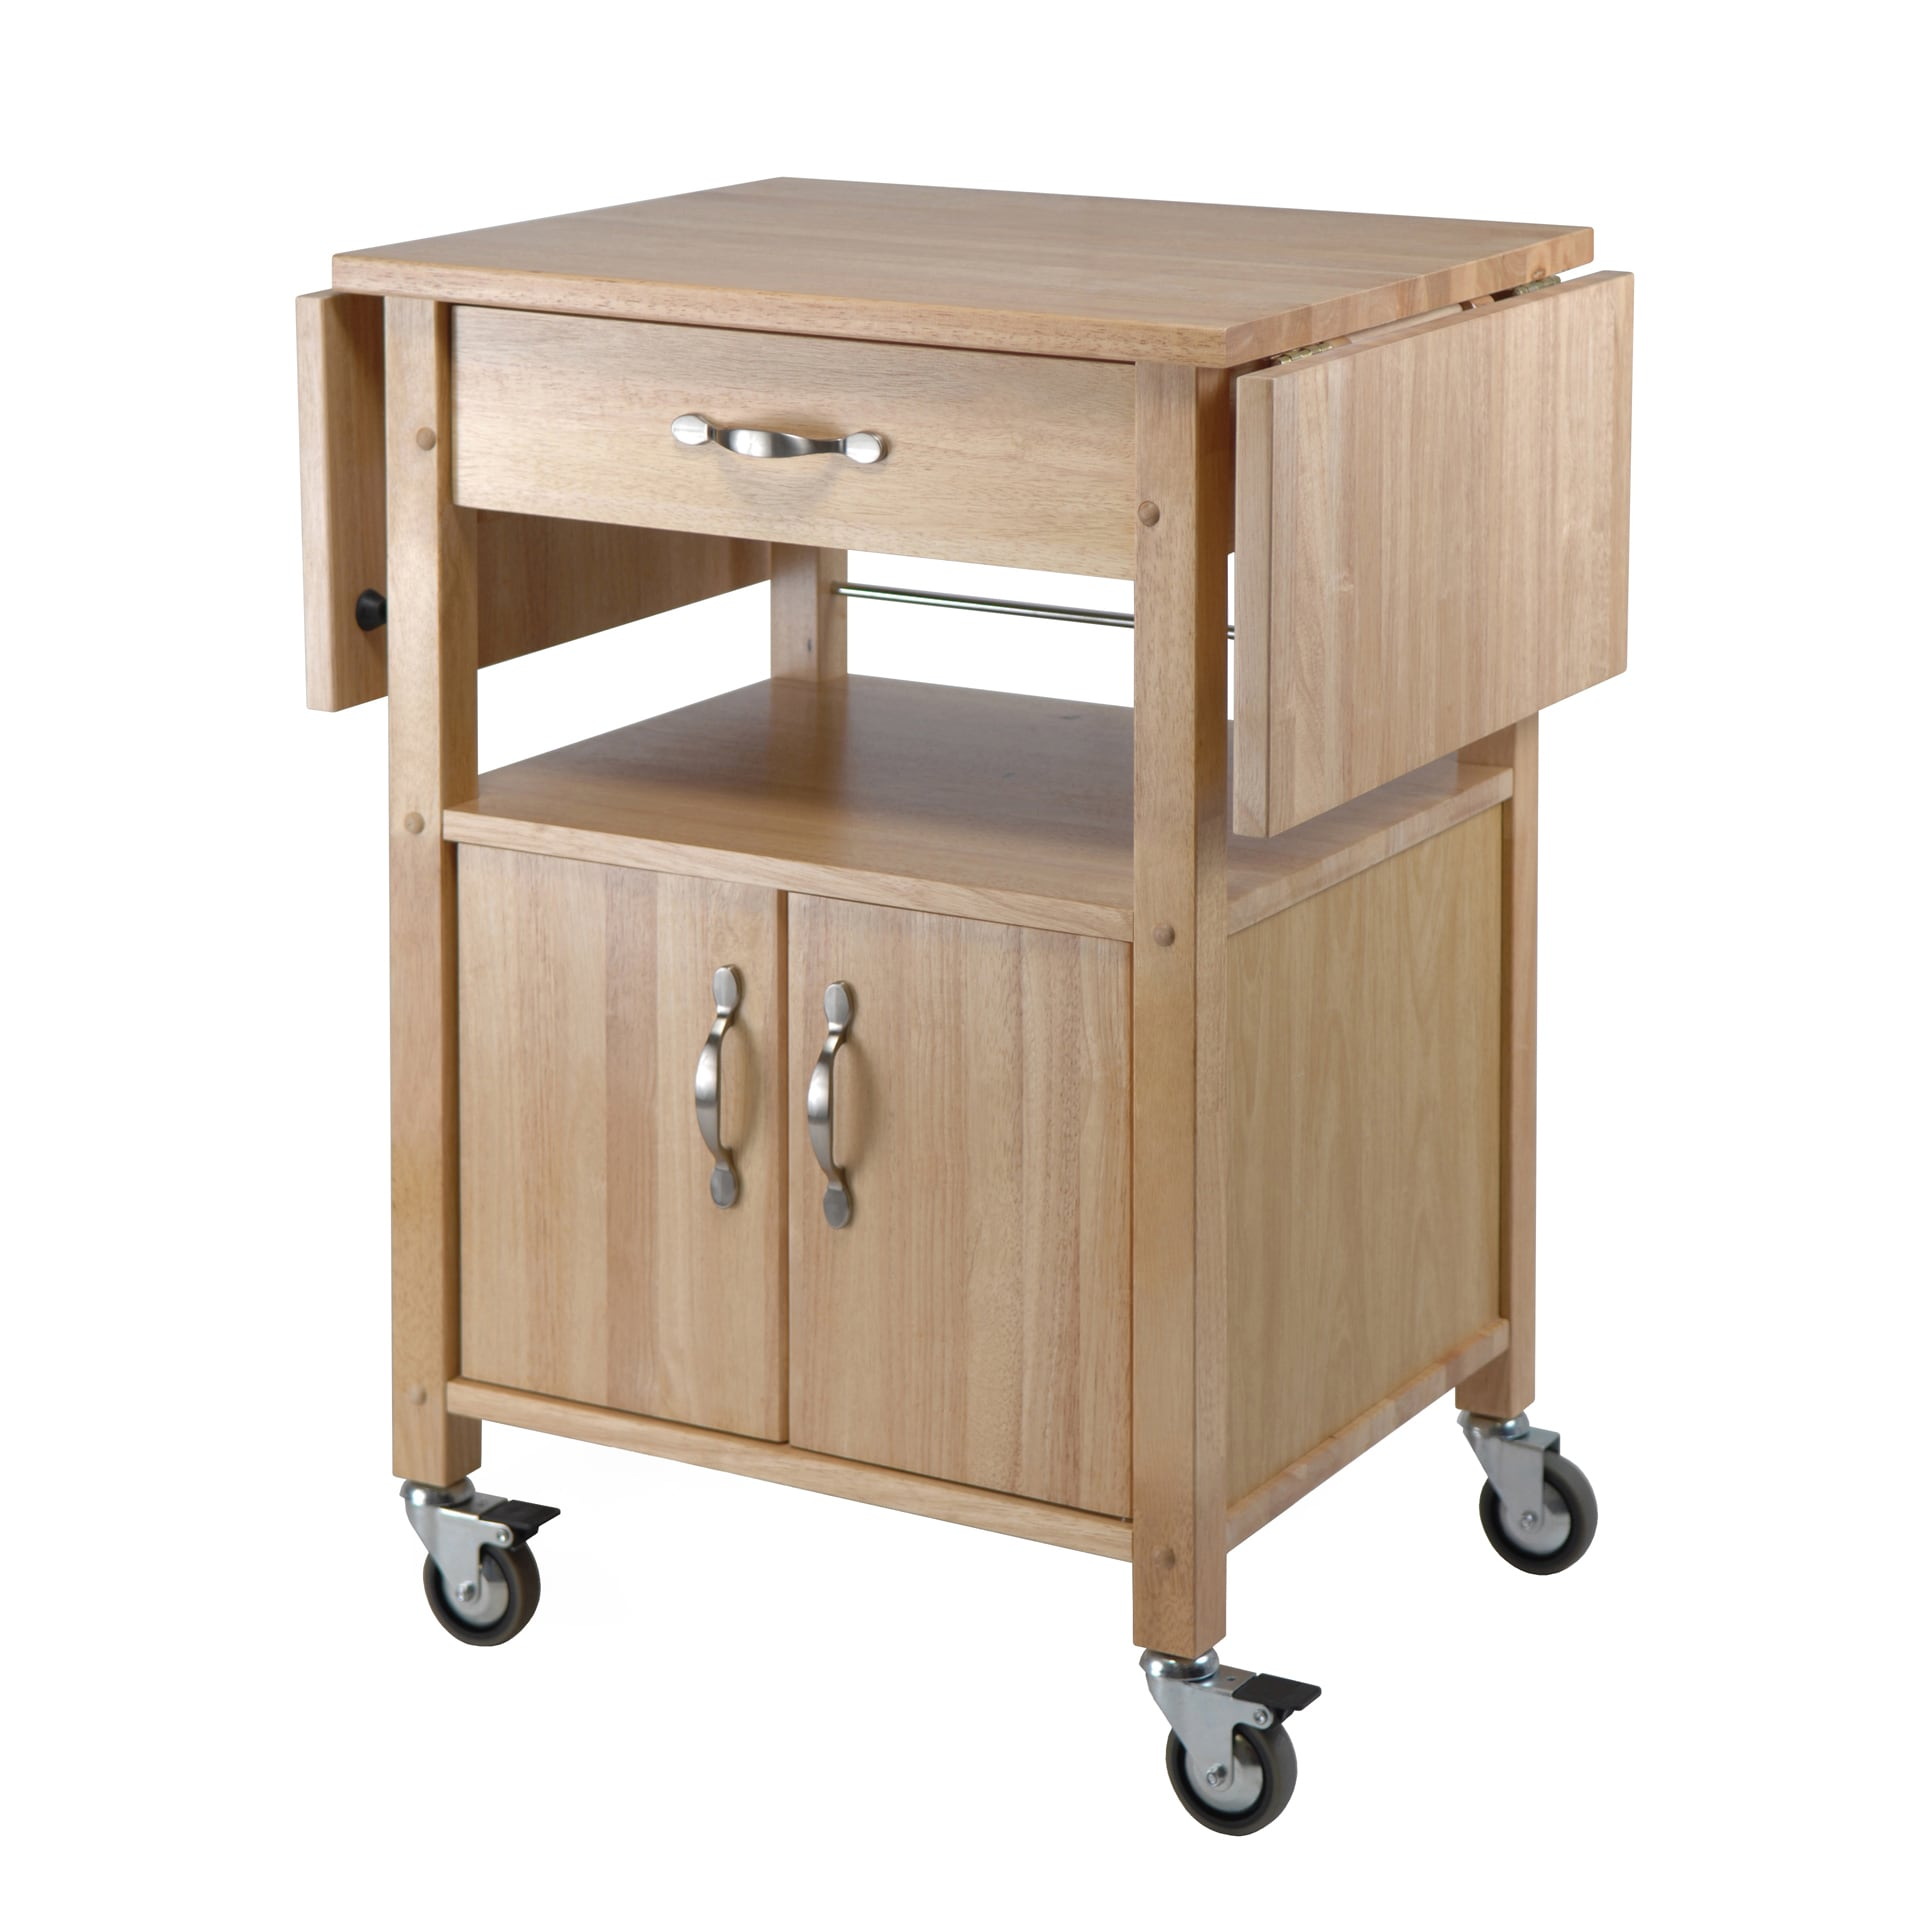 Shop winsome wooden double drop leaf kitchen cart cabinet with shelf free shipping today overstock com 12021183